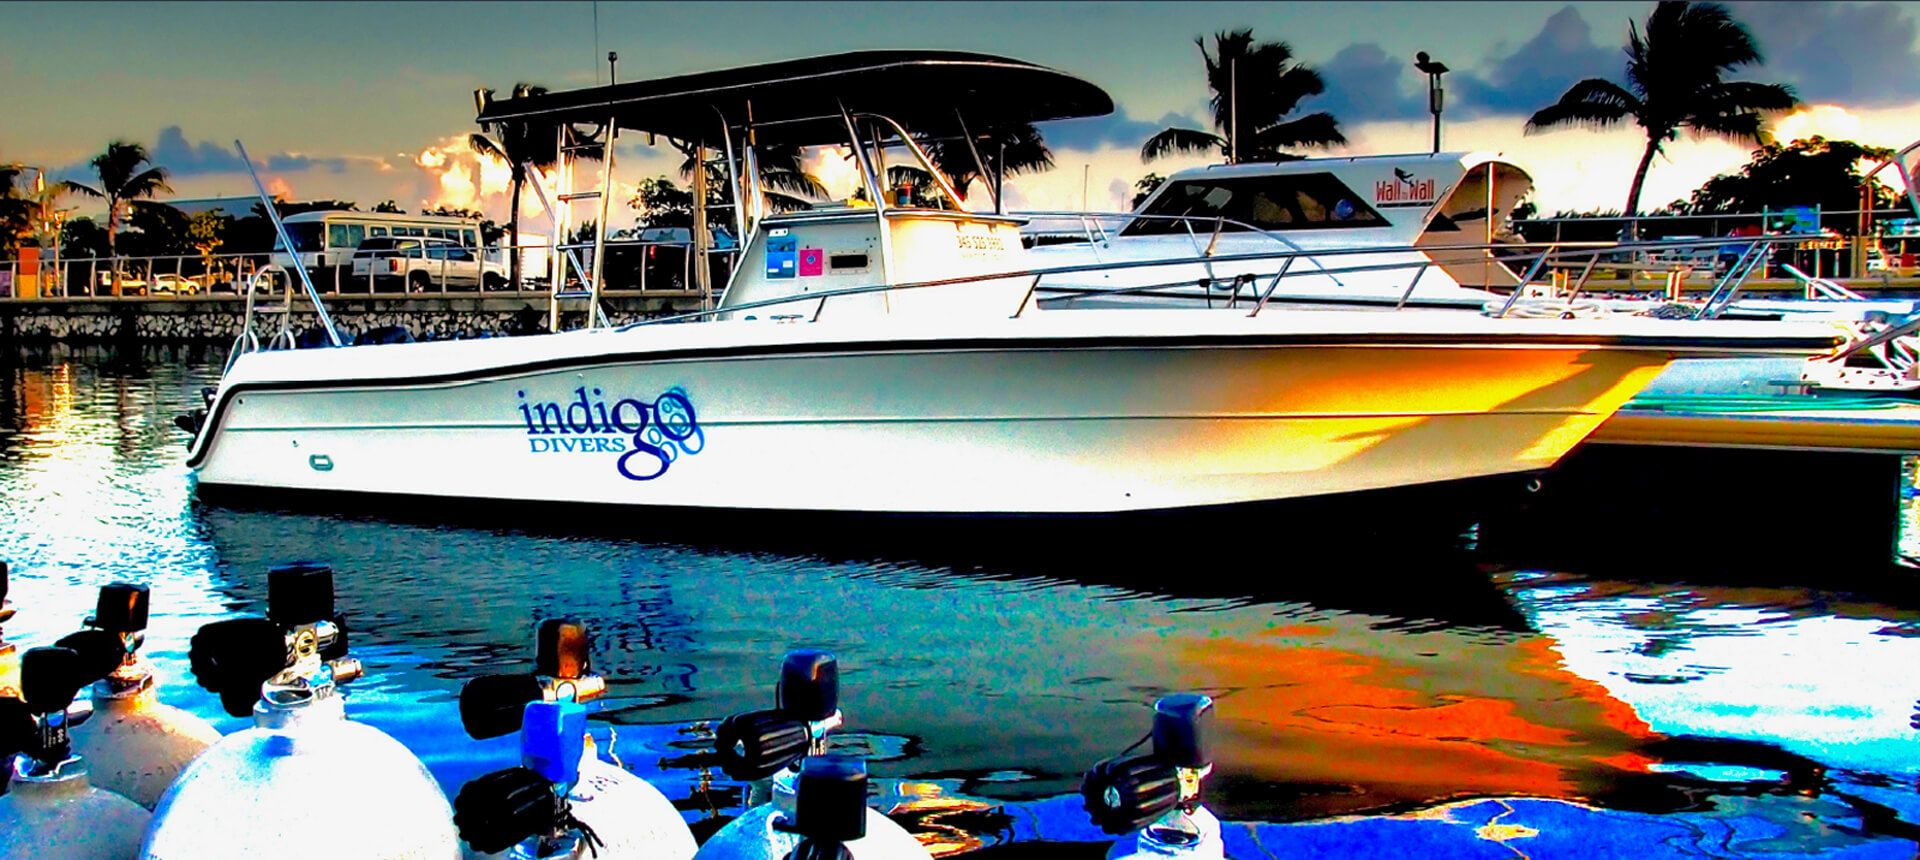 Indigo Divers Grand Cayman - Our Boats Image 1